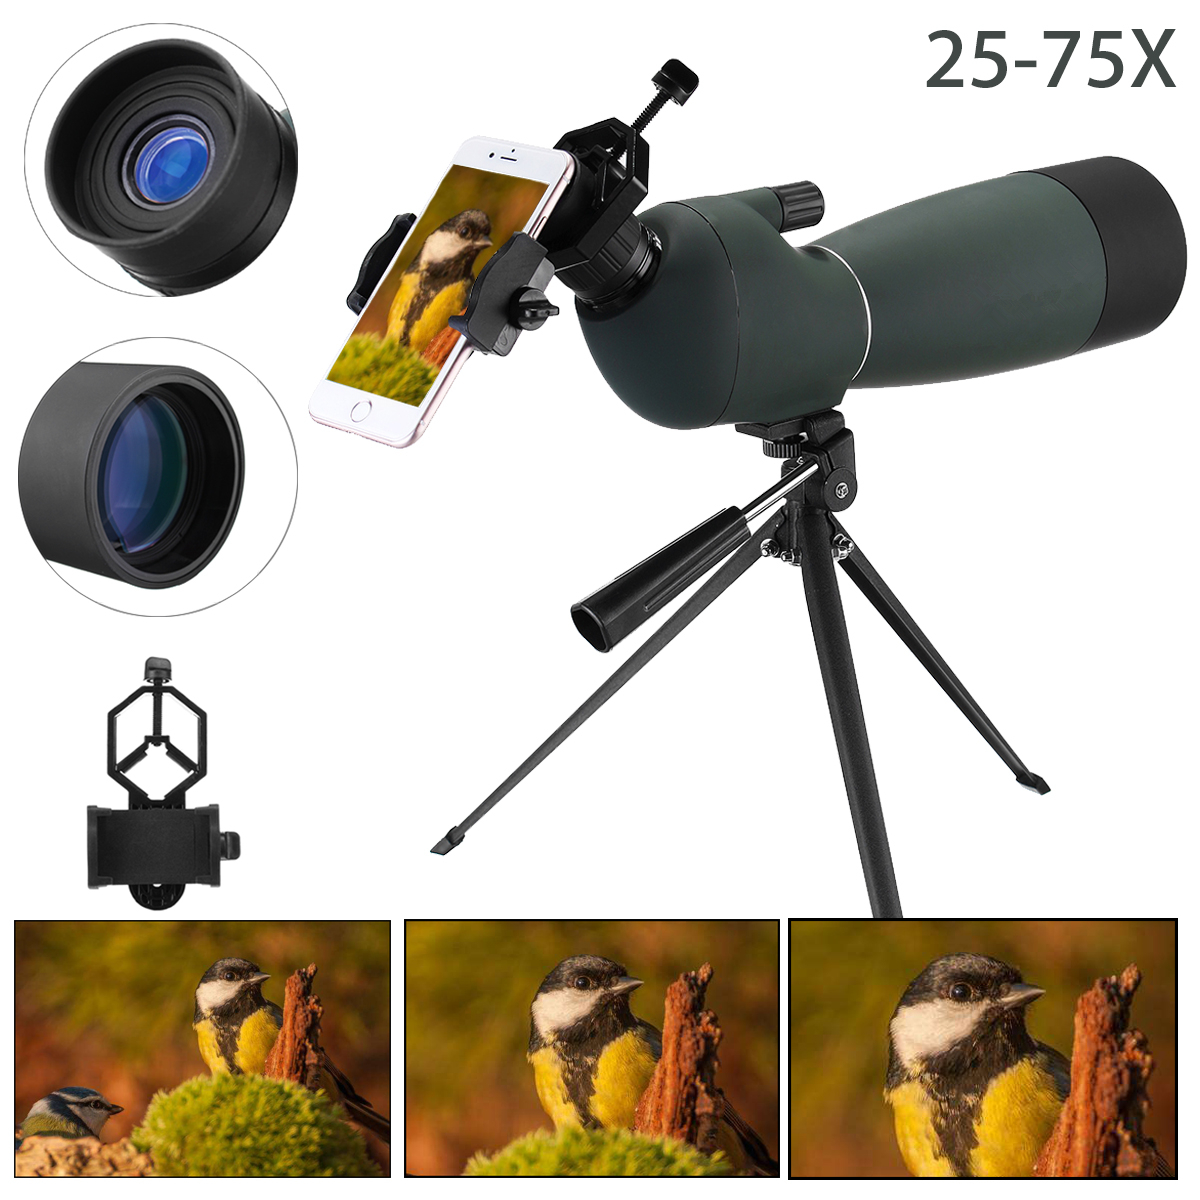 купить 25-75X70 Zoom Telescope Monocular Waterproof Shockproof Spotting Scope Binoculars with Tripod Phone Holder for Birdwatching по цене 4895.14 рублей